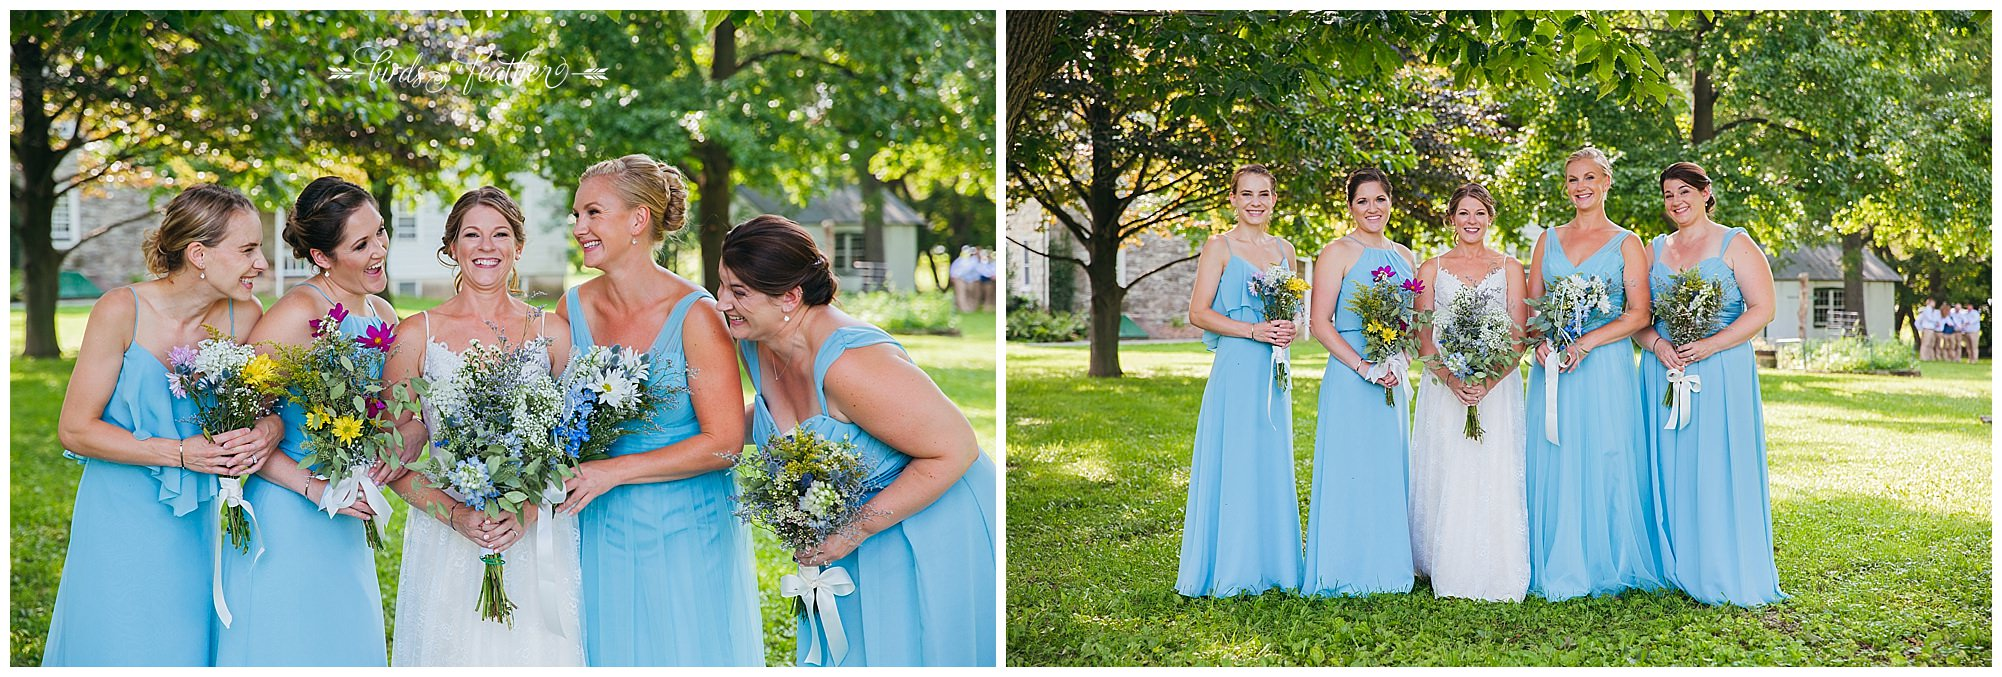 Birds of a Feather Photography Rodale Institute Kutztown Pa Wedding Photographer 06